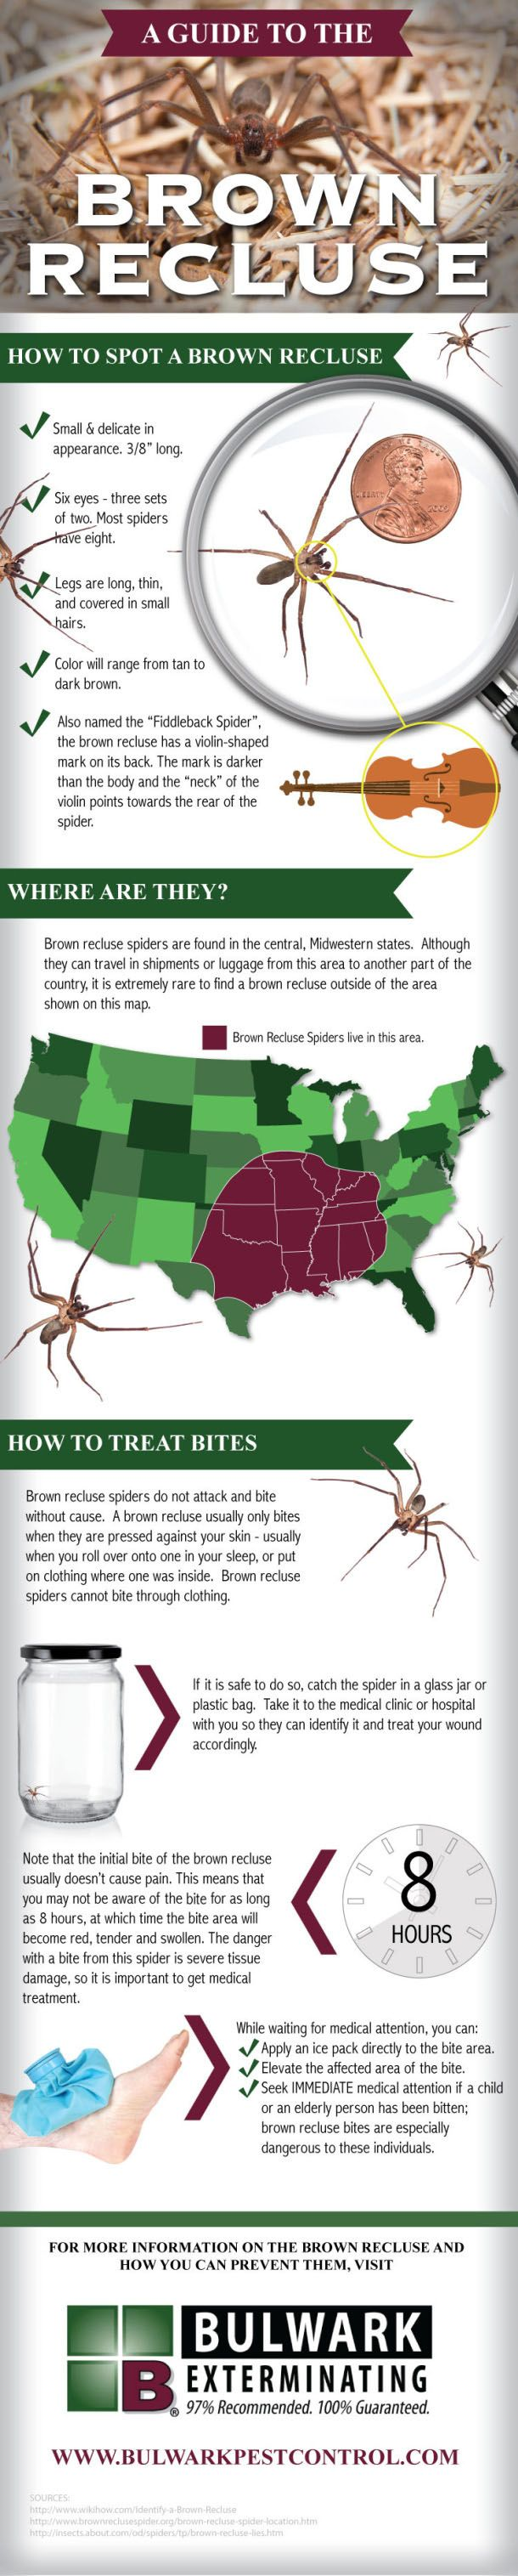 Infographic A Guide To The Brown Recluse | Infographics Creator